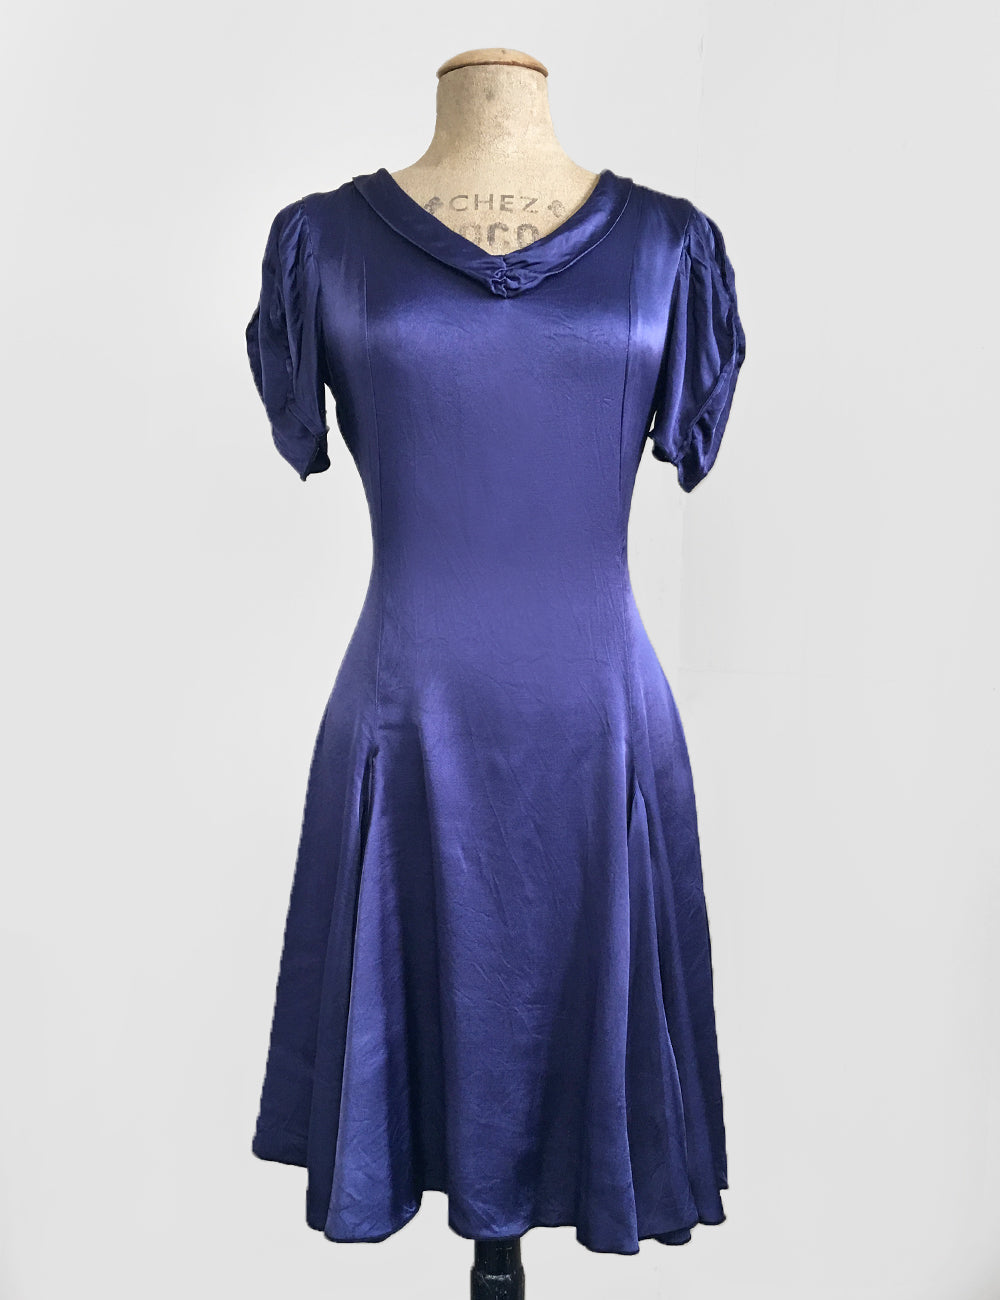 Slate Blue Satin 1930s Venice Beach Balboa Swing Dress